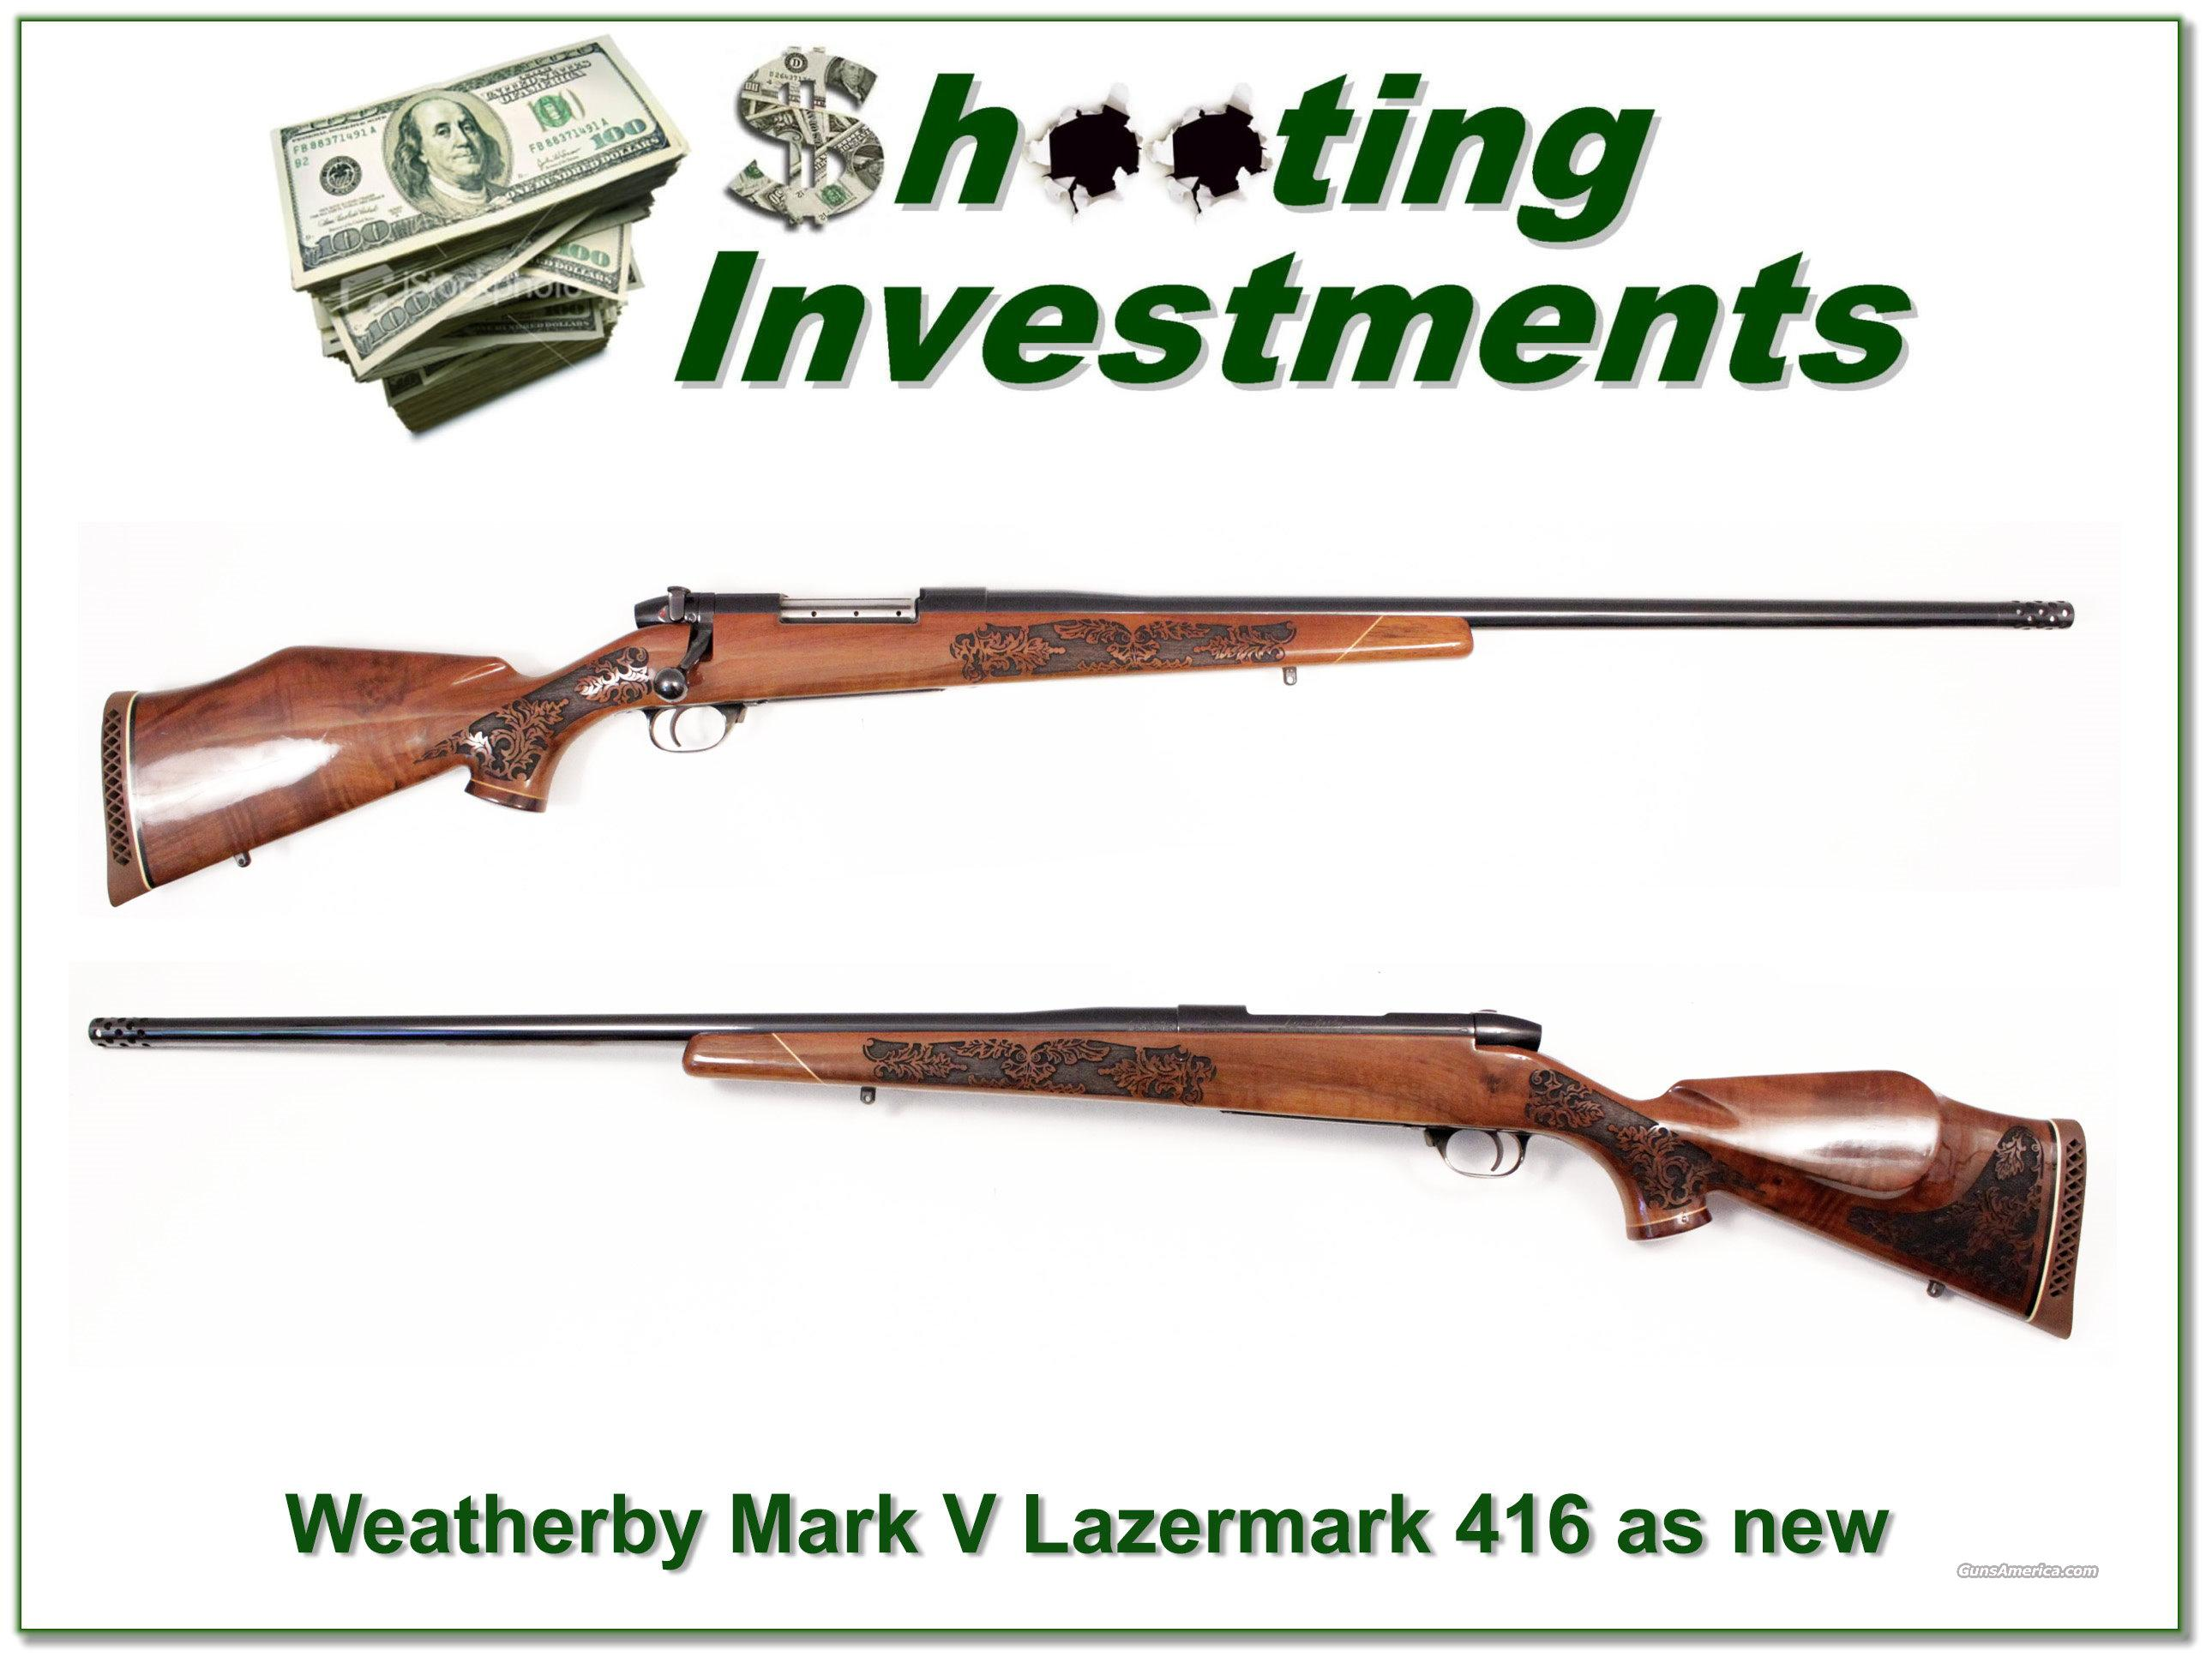 Weatherby Mark V Lazermark 416 5 Panel  Guns > Rifles > Weatherby Rifles > Sporting